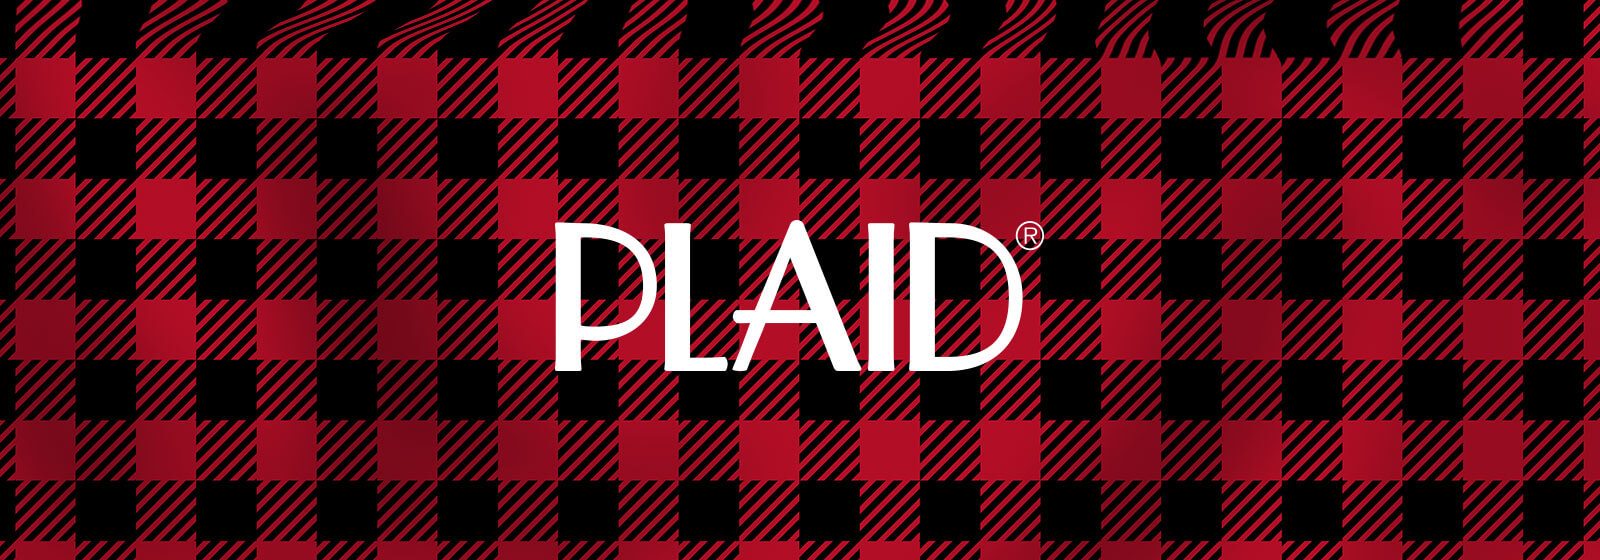 plaid-header